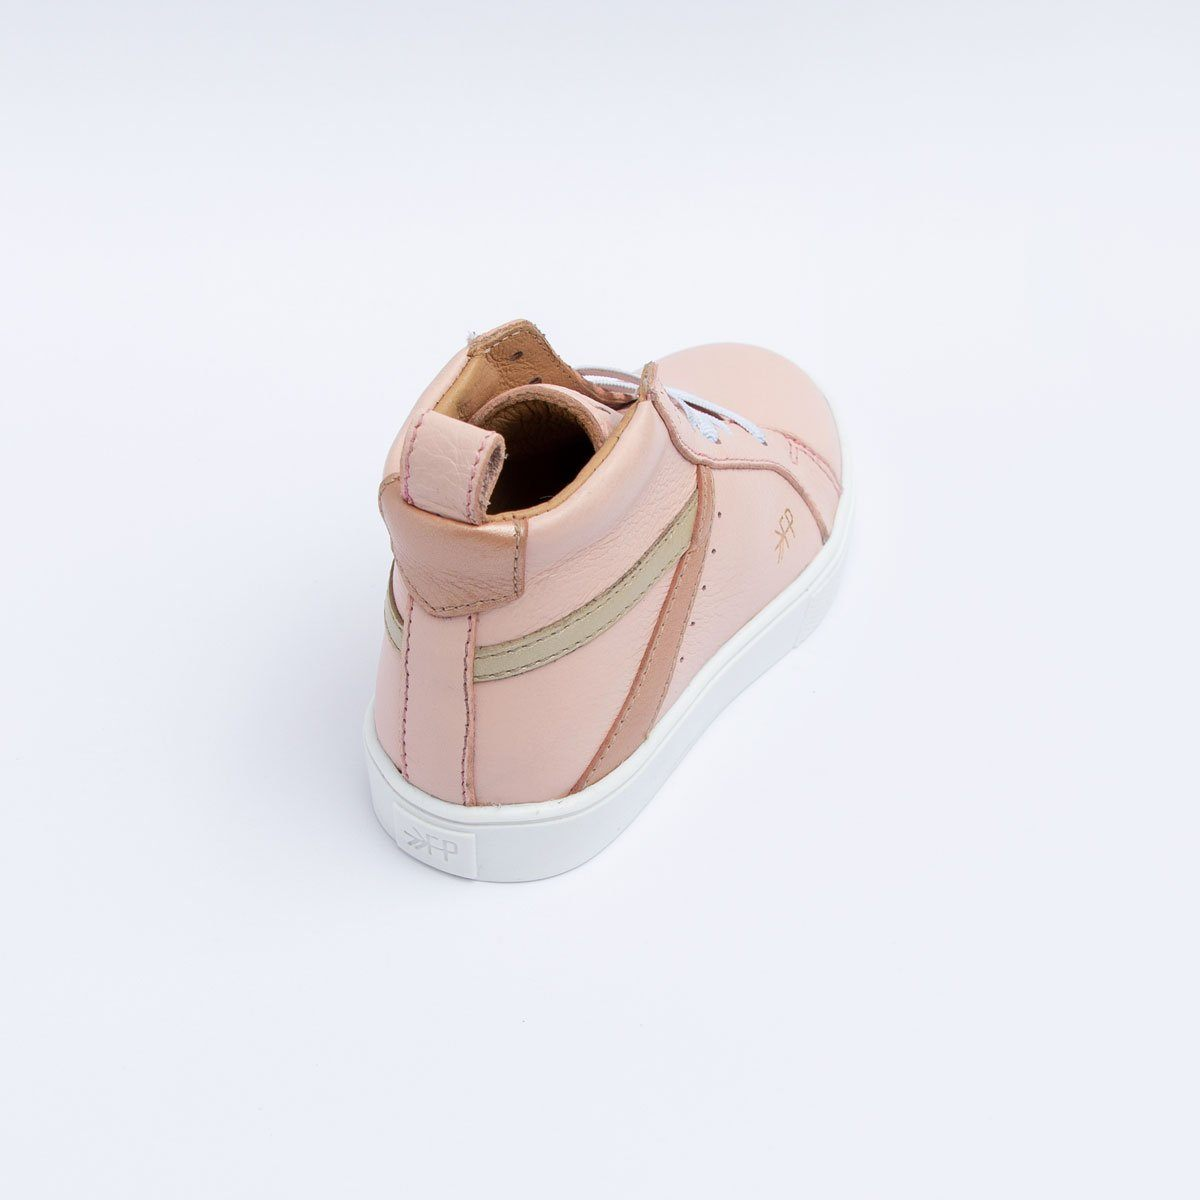 Blush High Top Sneaker